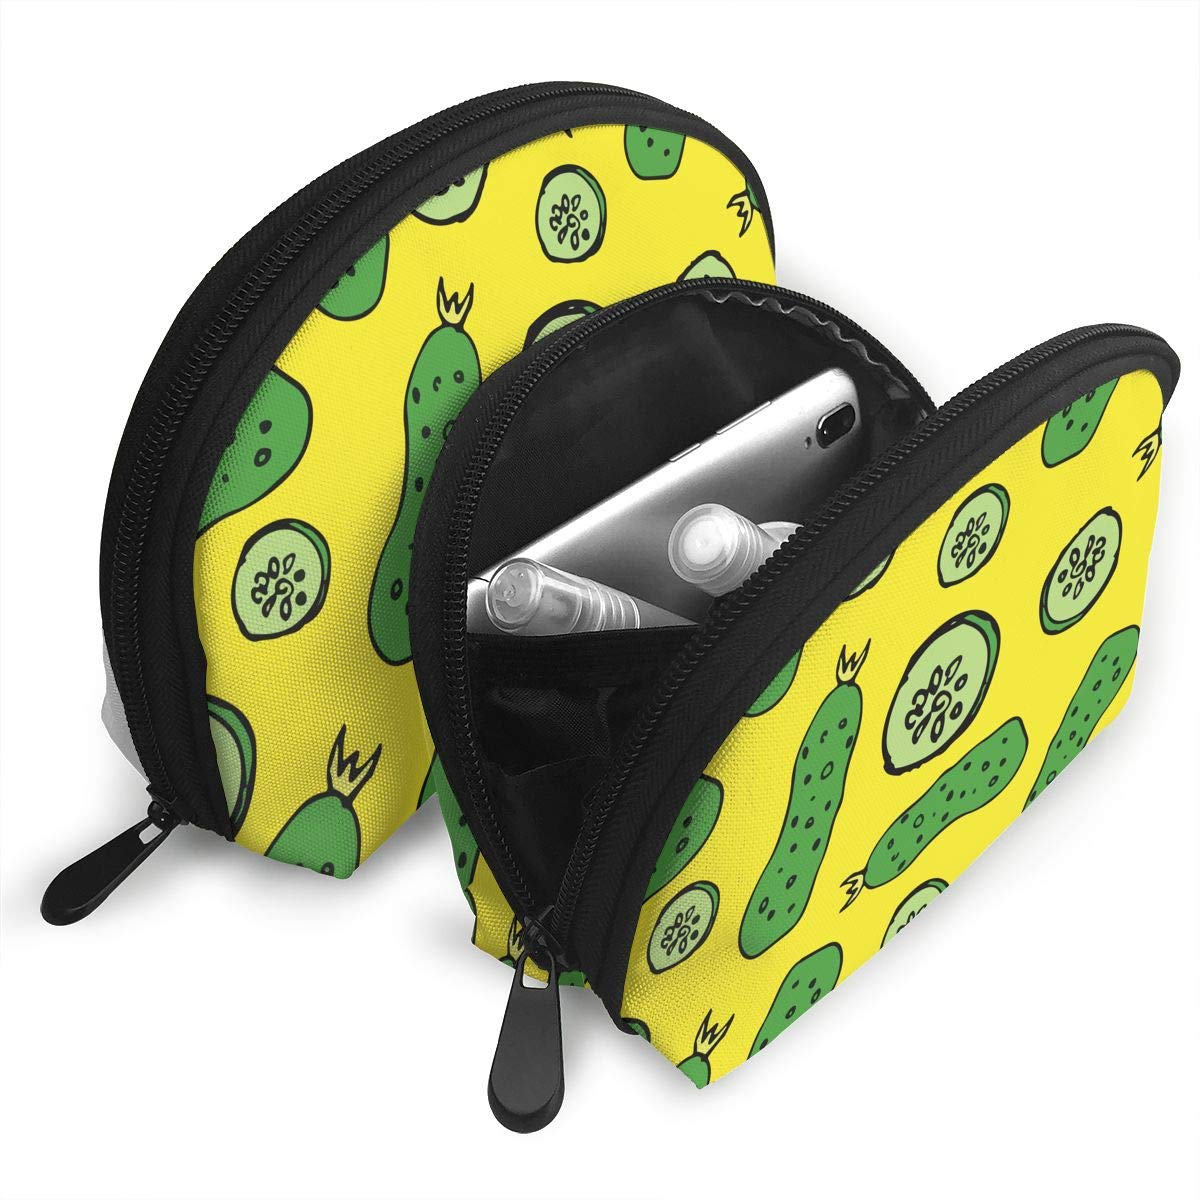 Amazon.com: Green Cucumber 2 Piece Set Cosmetic Beauty Bag Travel Handy Organizer Pouch Clutch Makeup Pouch Set: Home & Kitchen